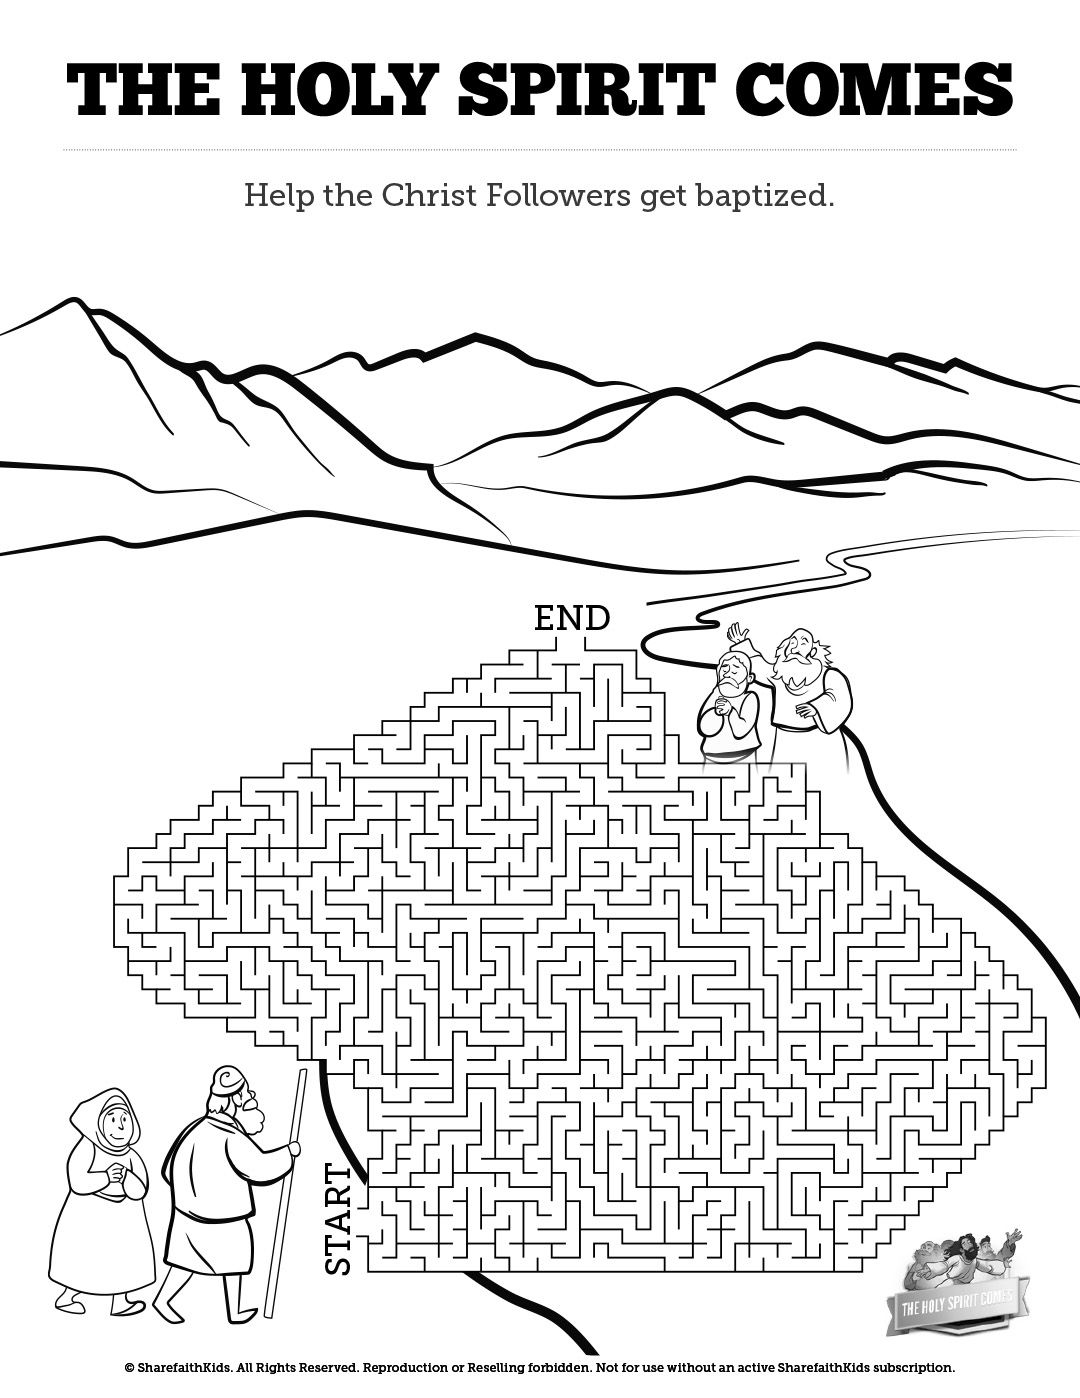 Acts 2 The Holy Spirit Comes Bible Mazes: Featuring